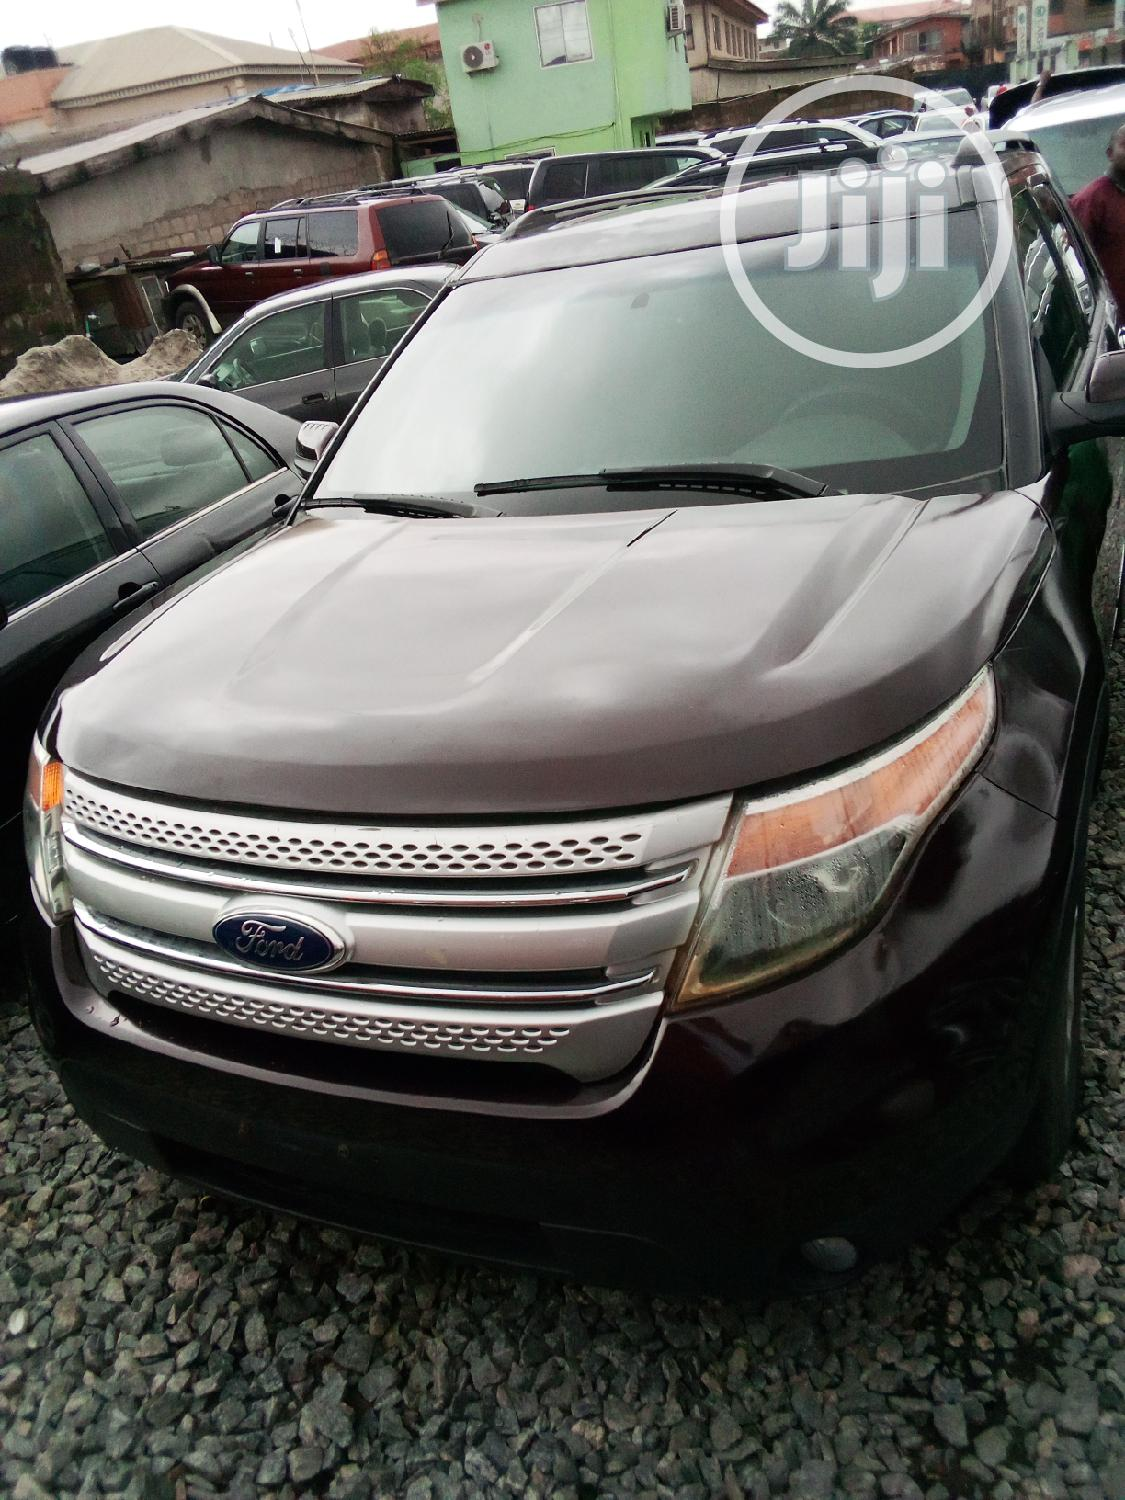 Archive: Ford Explorer 2011